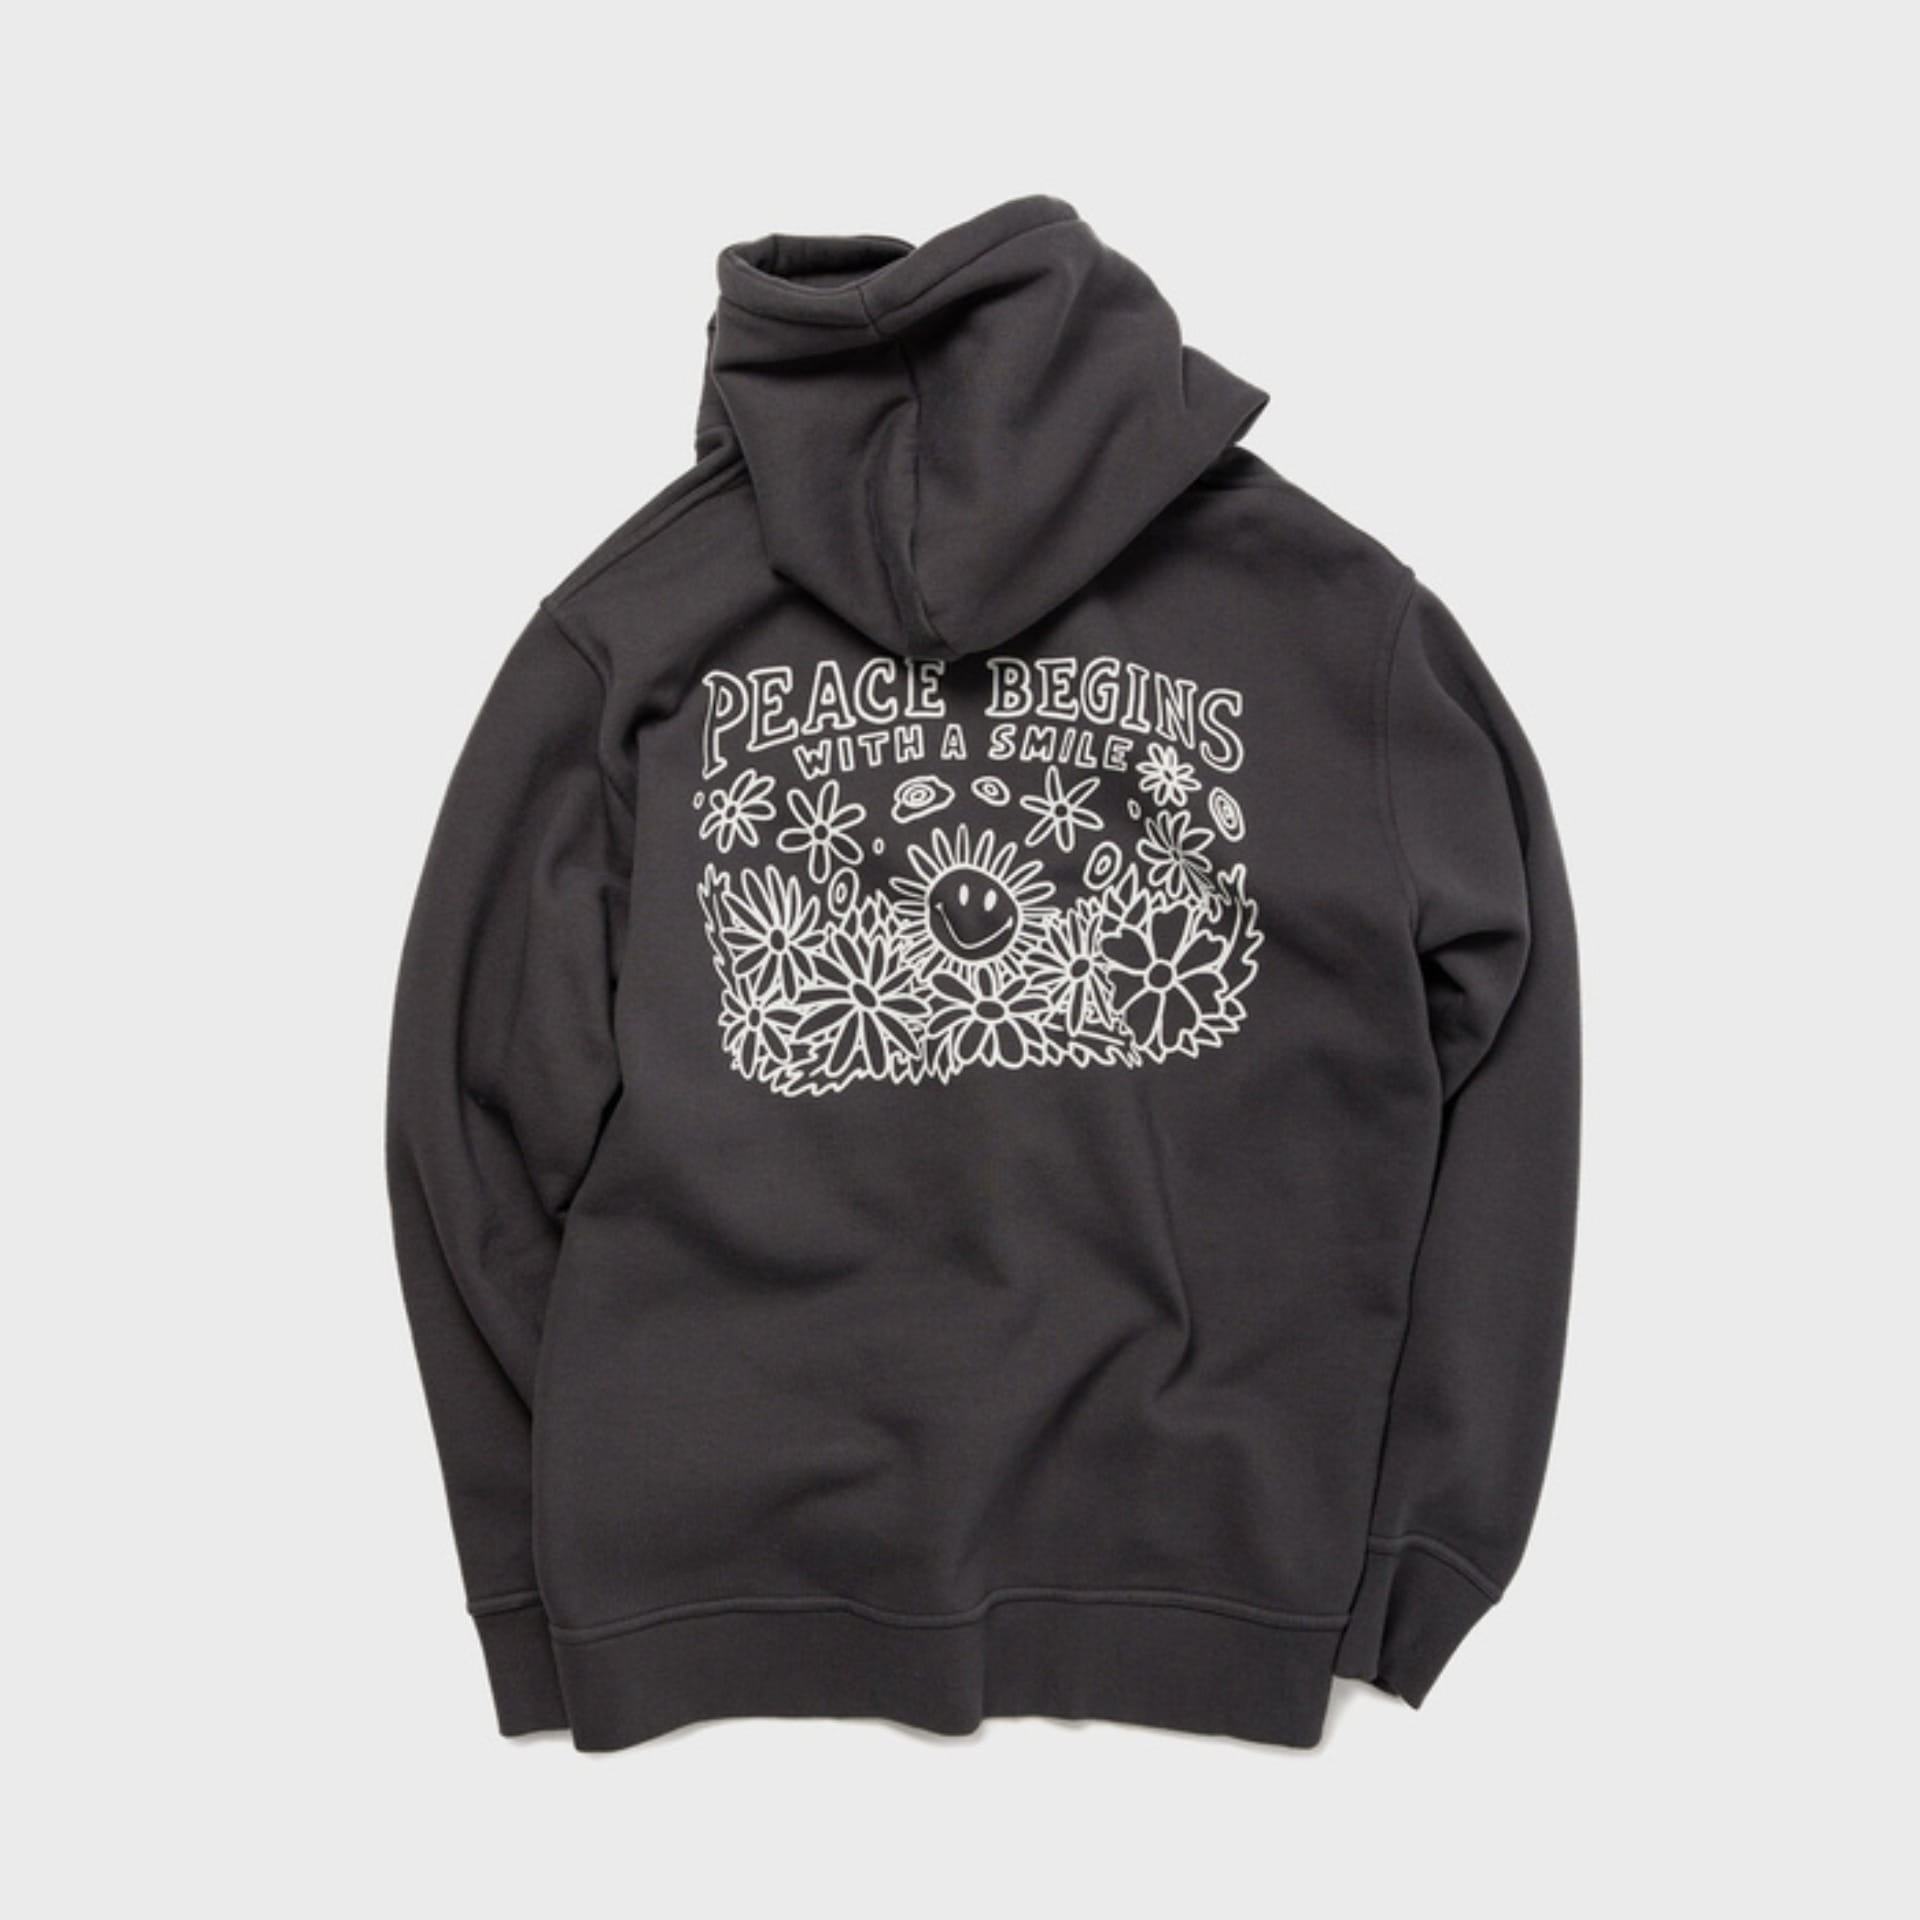 PEACE BEGINS SMILE HOODIE (IRON GRAY)